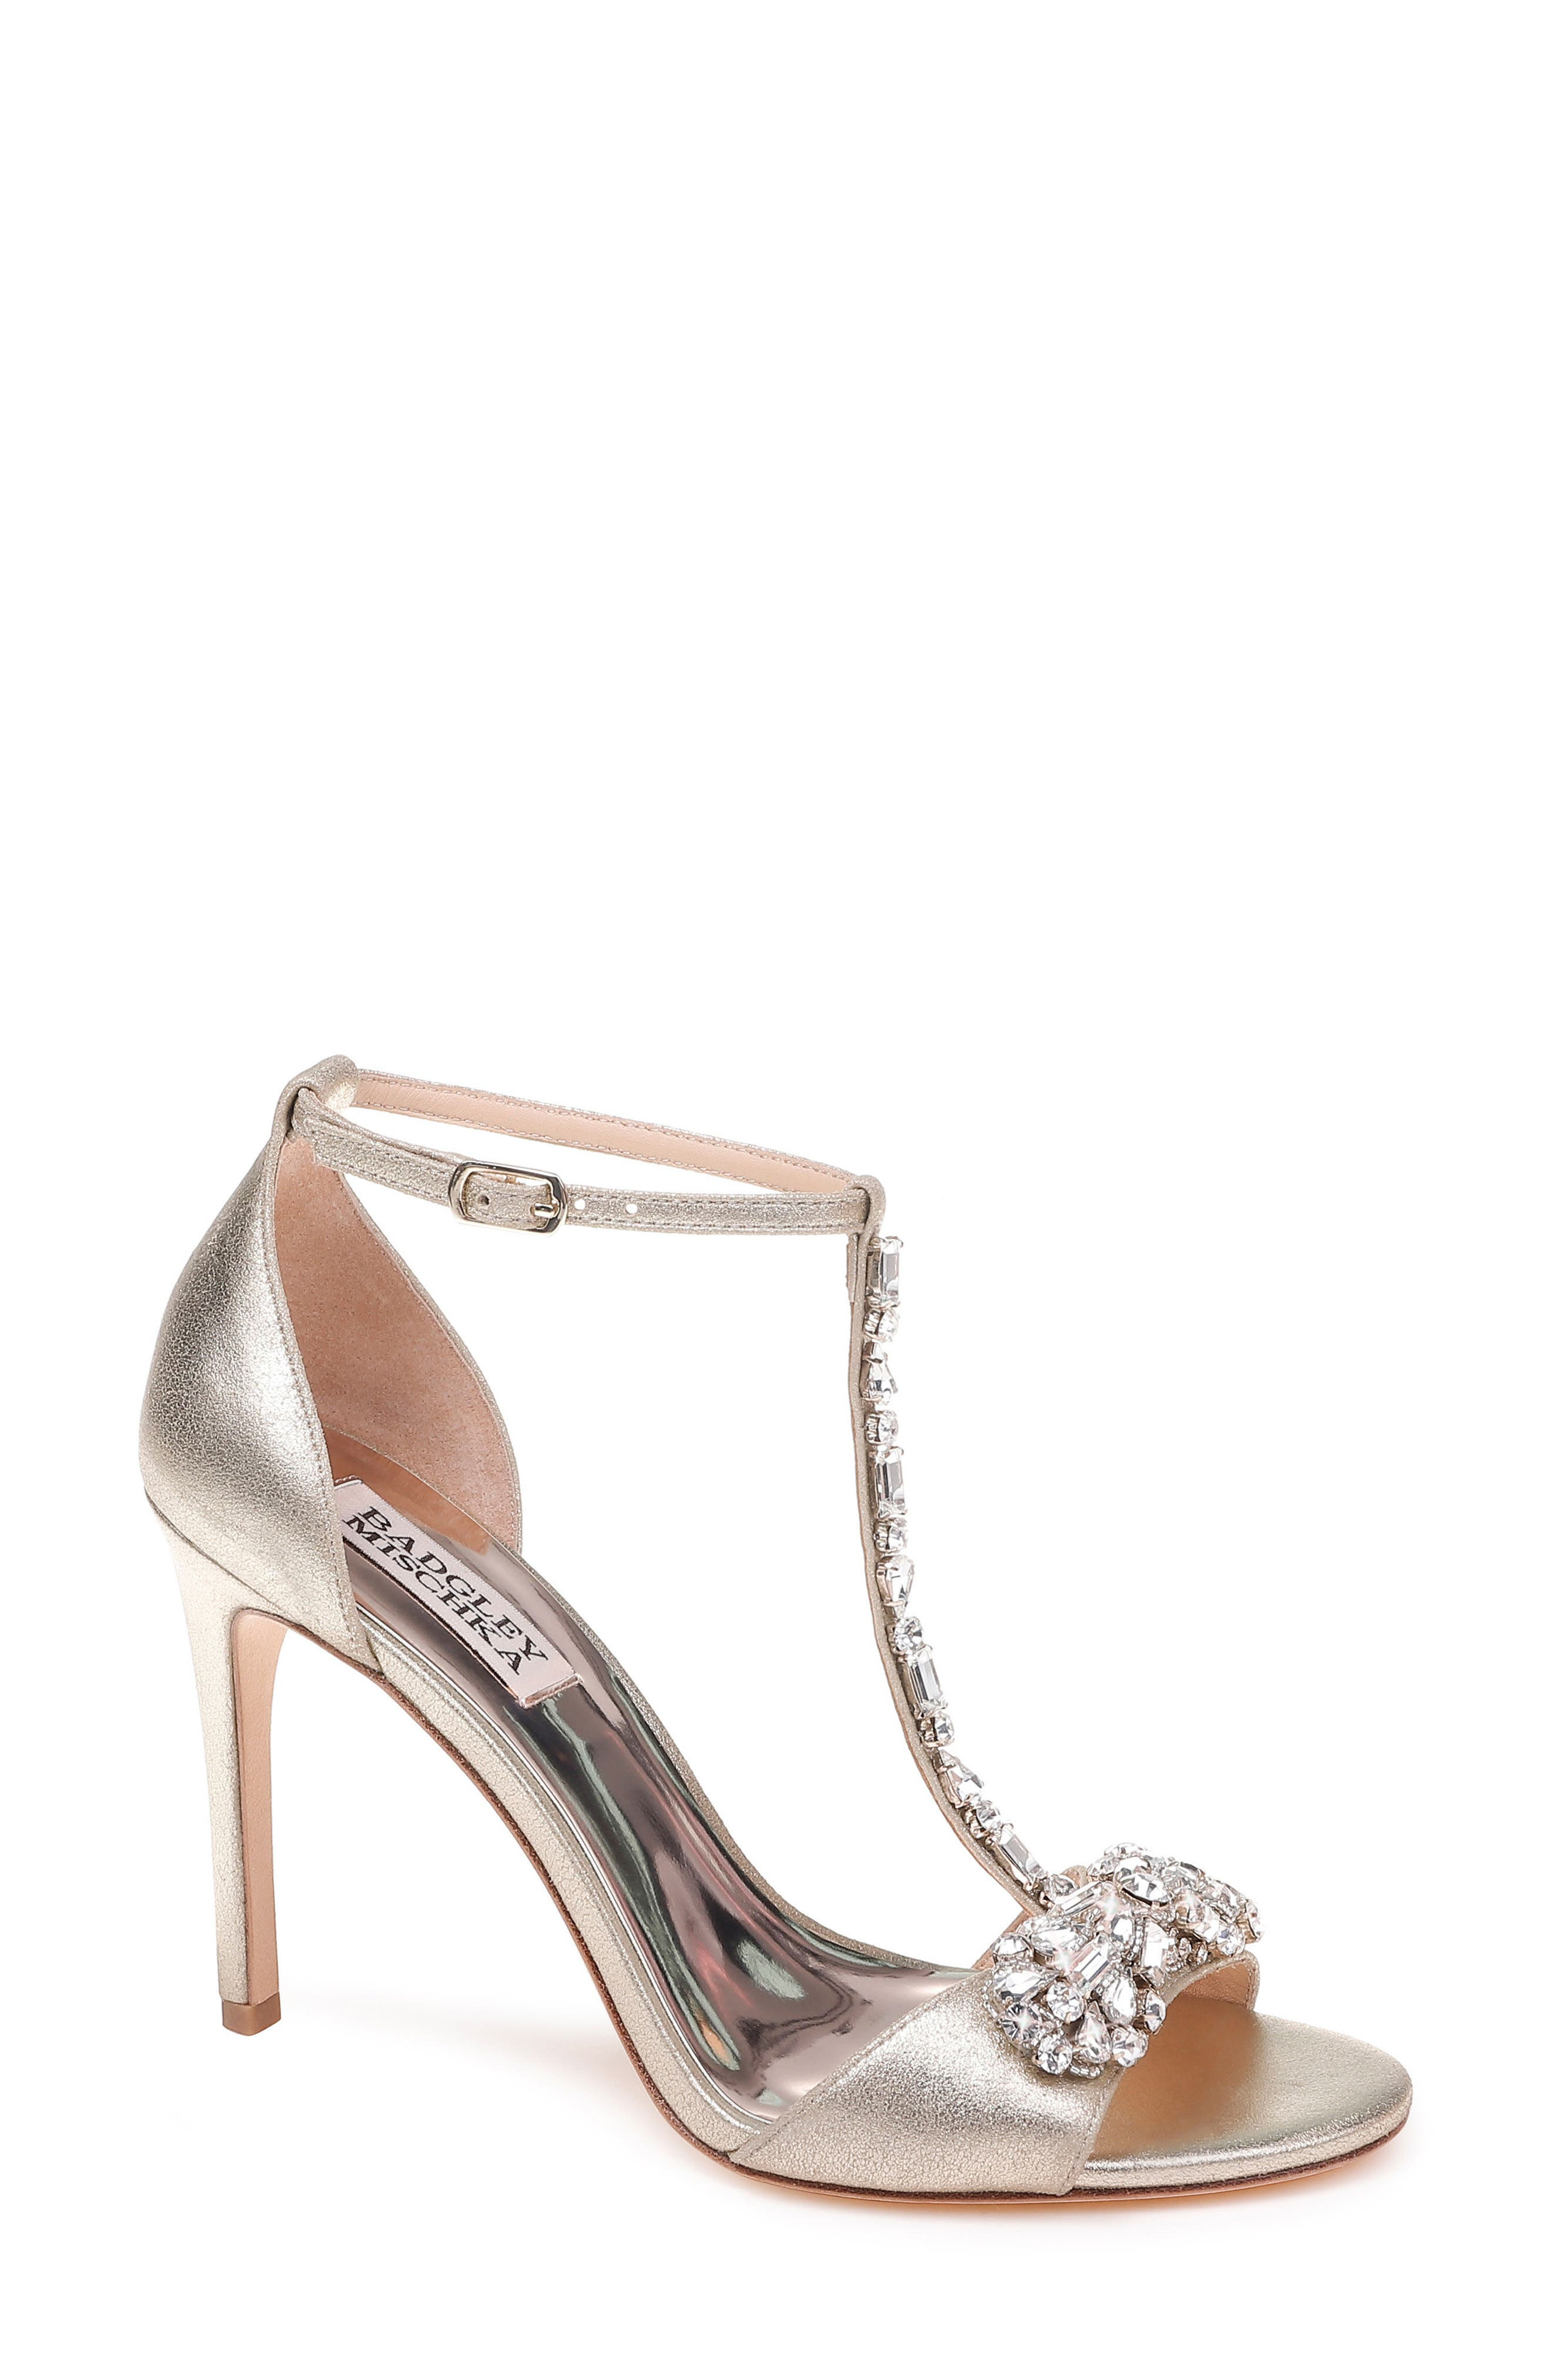 Pascale T-Strap Sandal,                         Main,                         color, PLATINUM METALLIC SUEDE